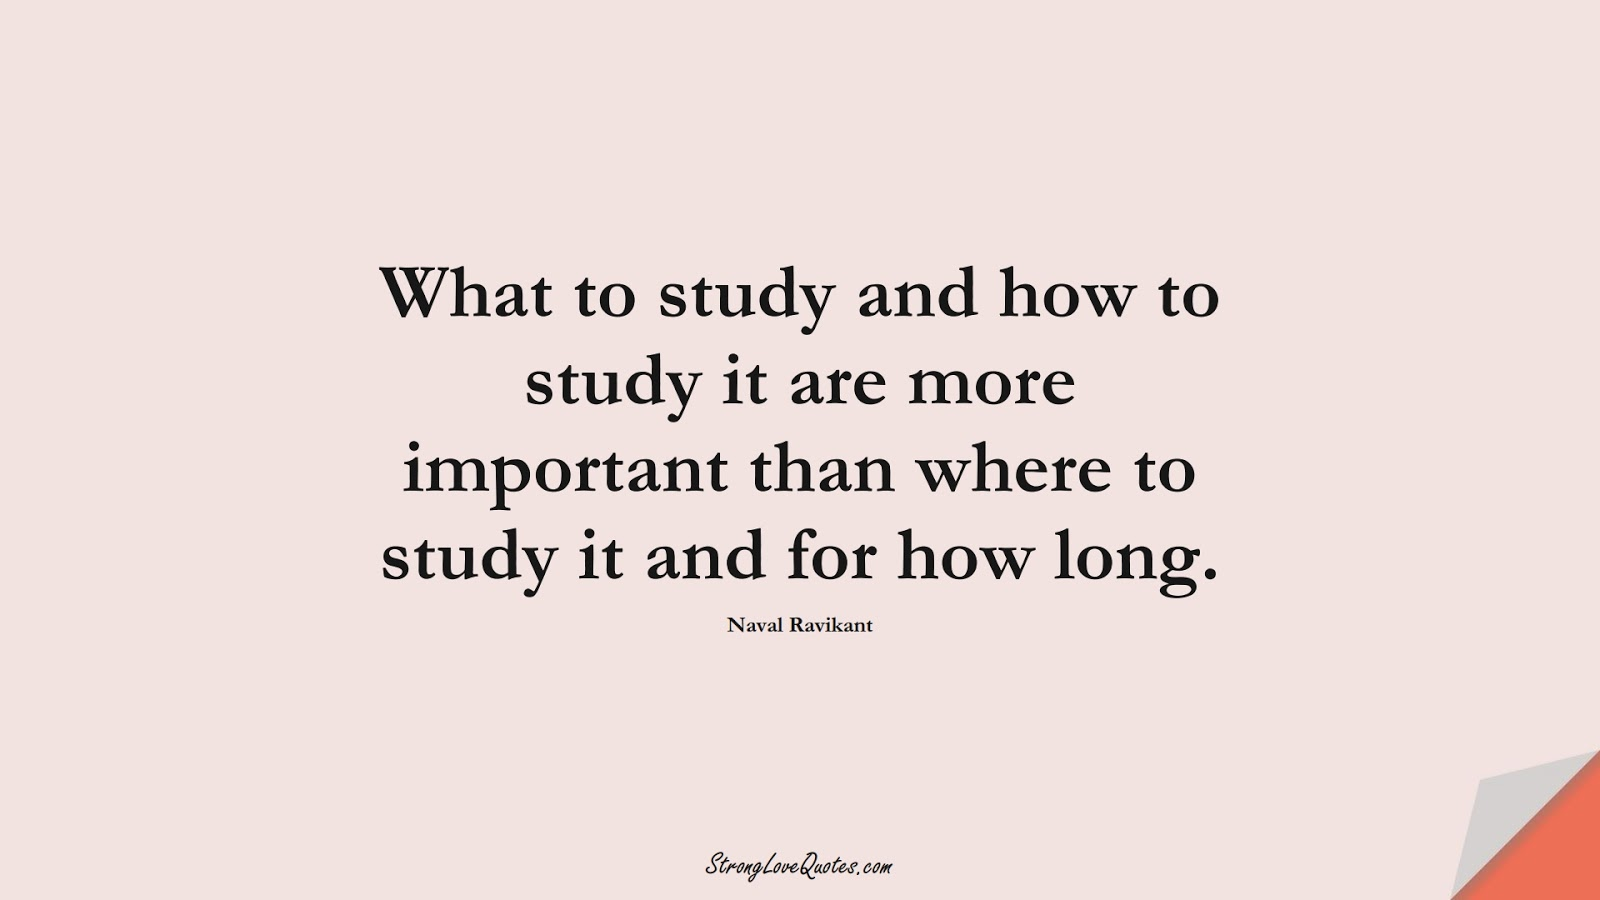 What to study and how to study it are more important than where to study it and for how long. (Naval Ravikant);  #KnowledgeQuotes